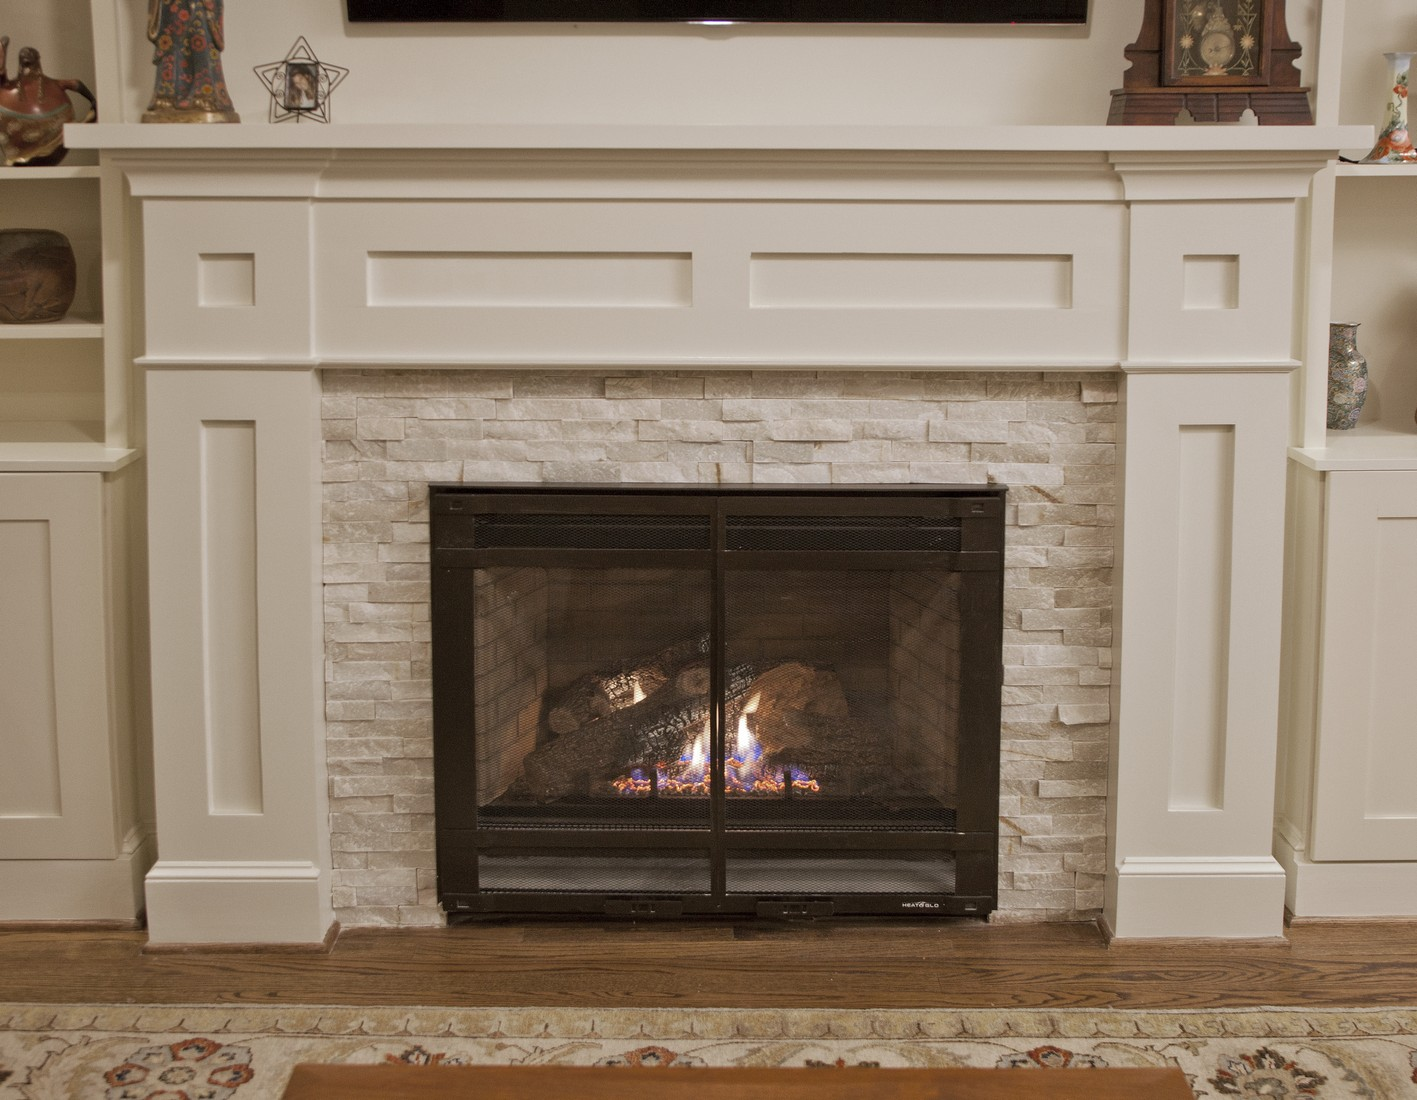 Propane Fireplace Repair Near Me Vent Free Gas Fireplaces Are They Safe Homeadvisor